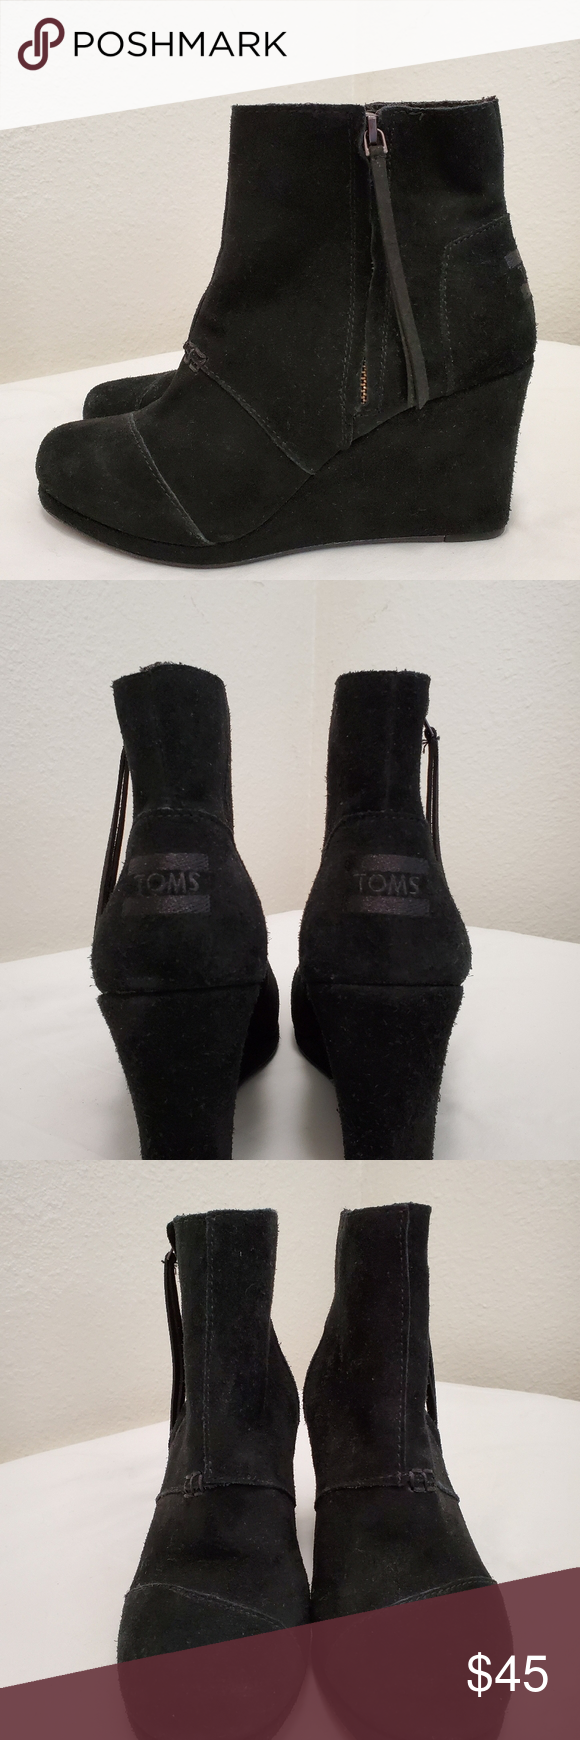 TOMS WEDGES BLACK TOMS wedges black size 8 like new. Toms Shoes Ankle Boots & Booties #tomwedges TOMS WEDGES BLACK TOMS wedges black size 8 like new. Toms Shoes Ankle Boots & Booties #tomwedges